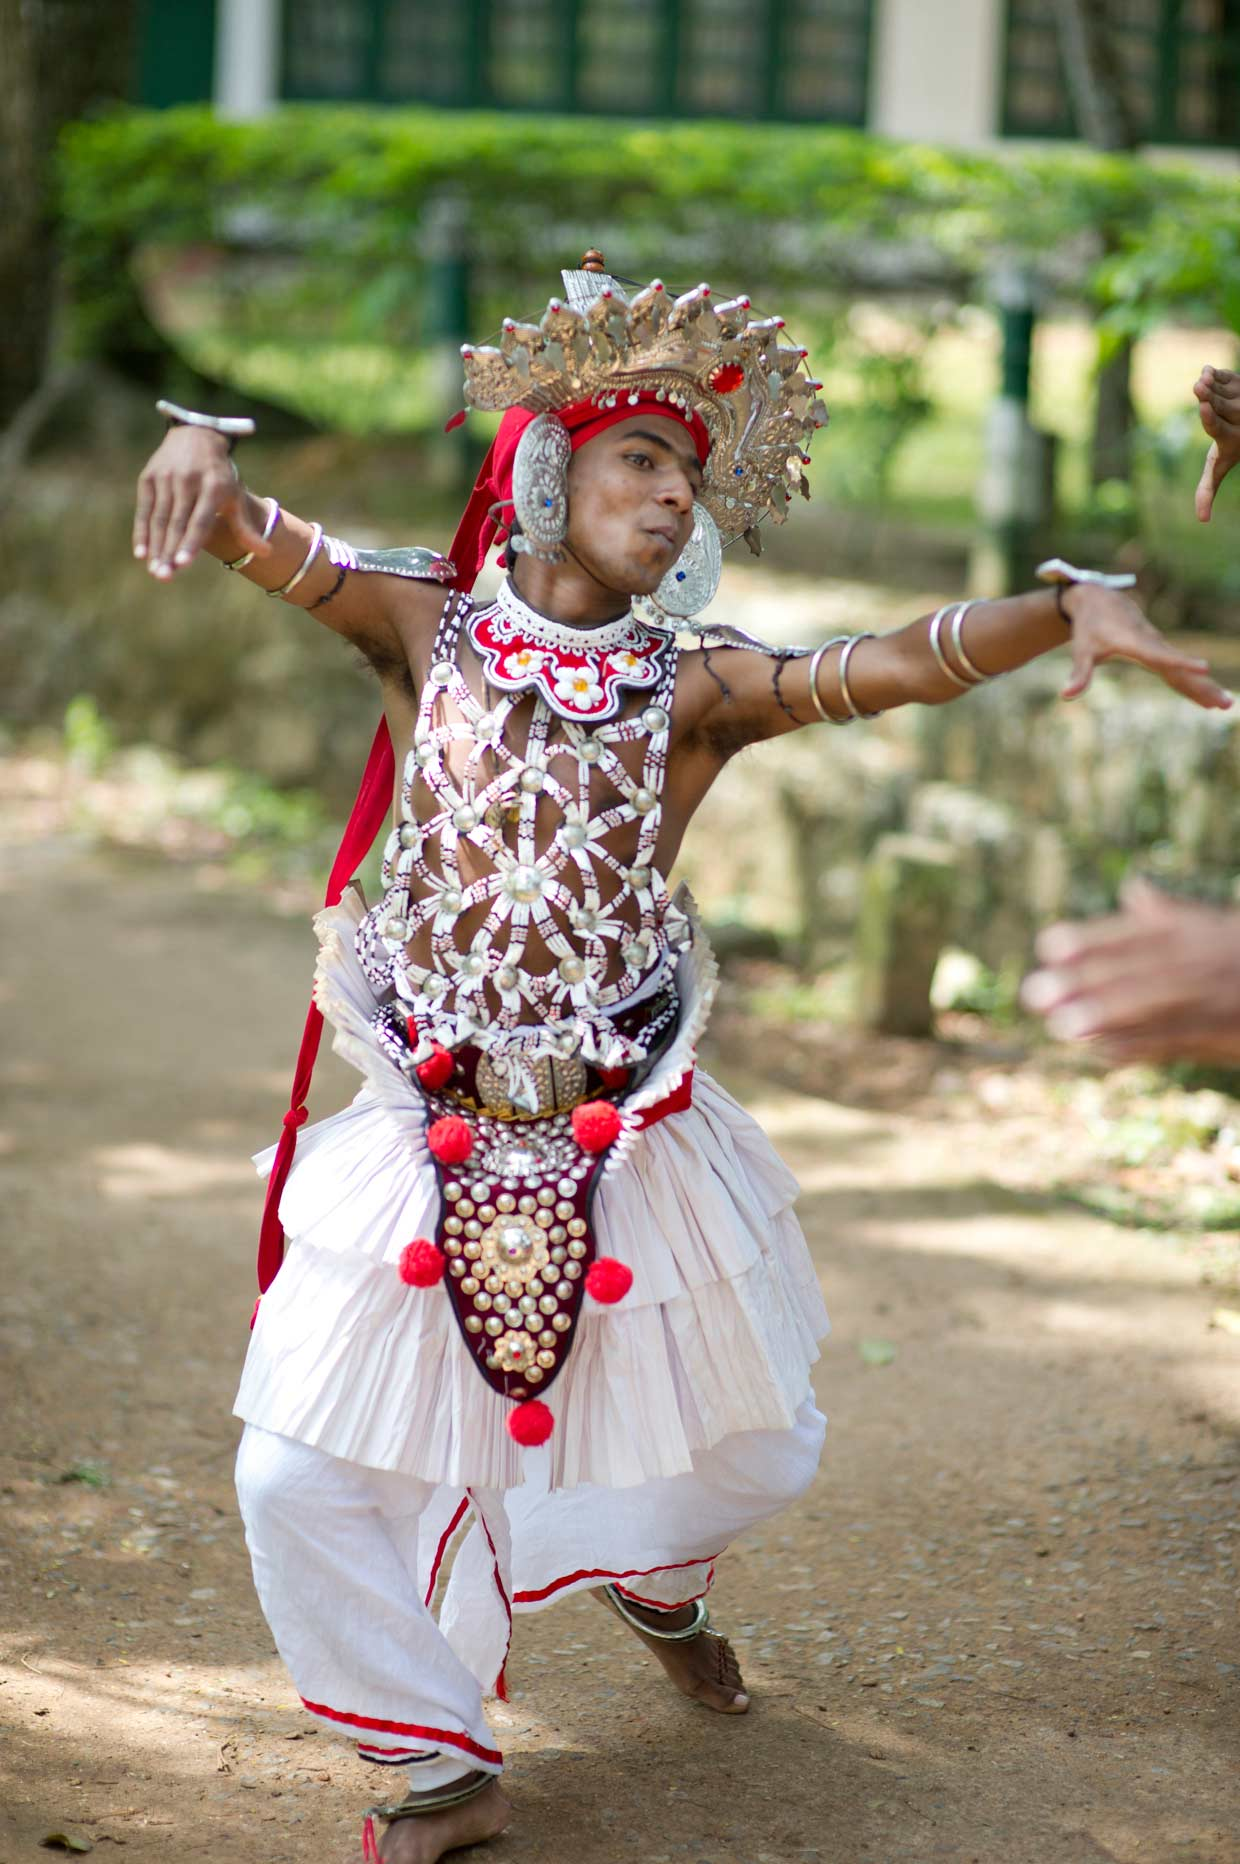 A young dancer from the MJF Kids dance troupe performing the traditional Kandyan dance. Youth from marginalised backgrounds are given an opportunity to better themselves through creativity and appreciation of art at the MJF Centres.